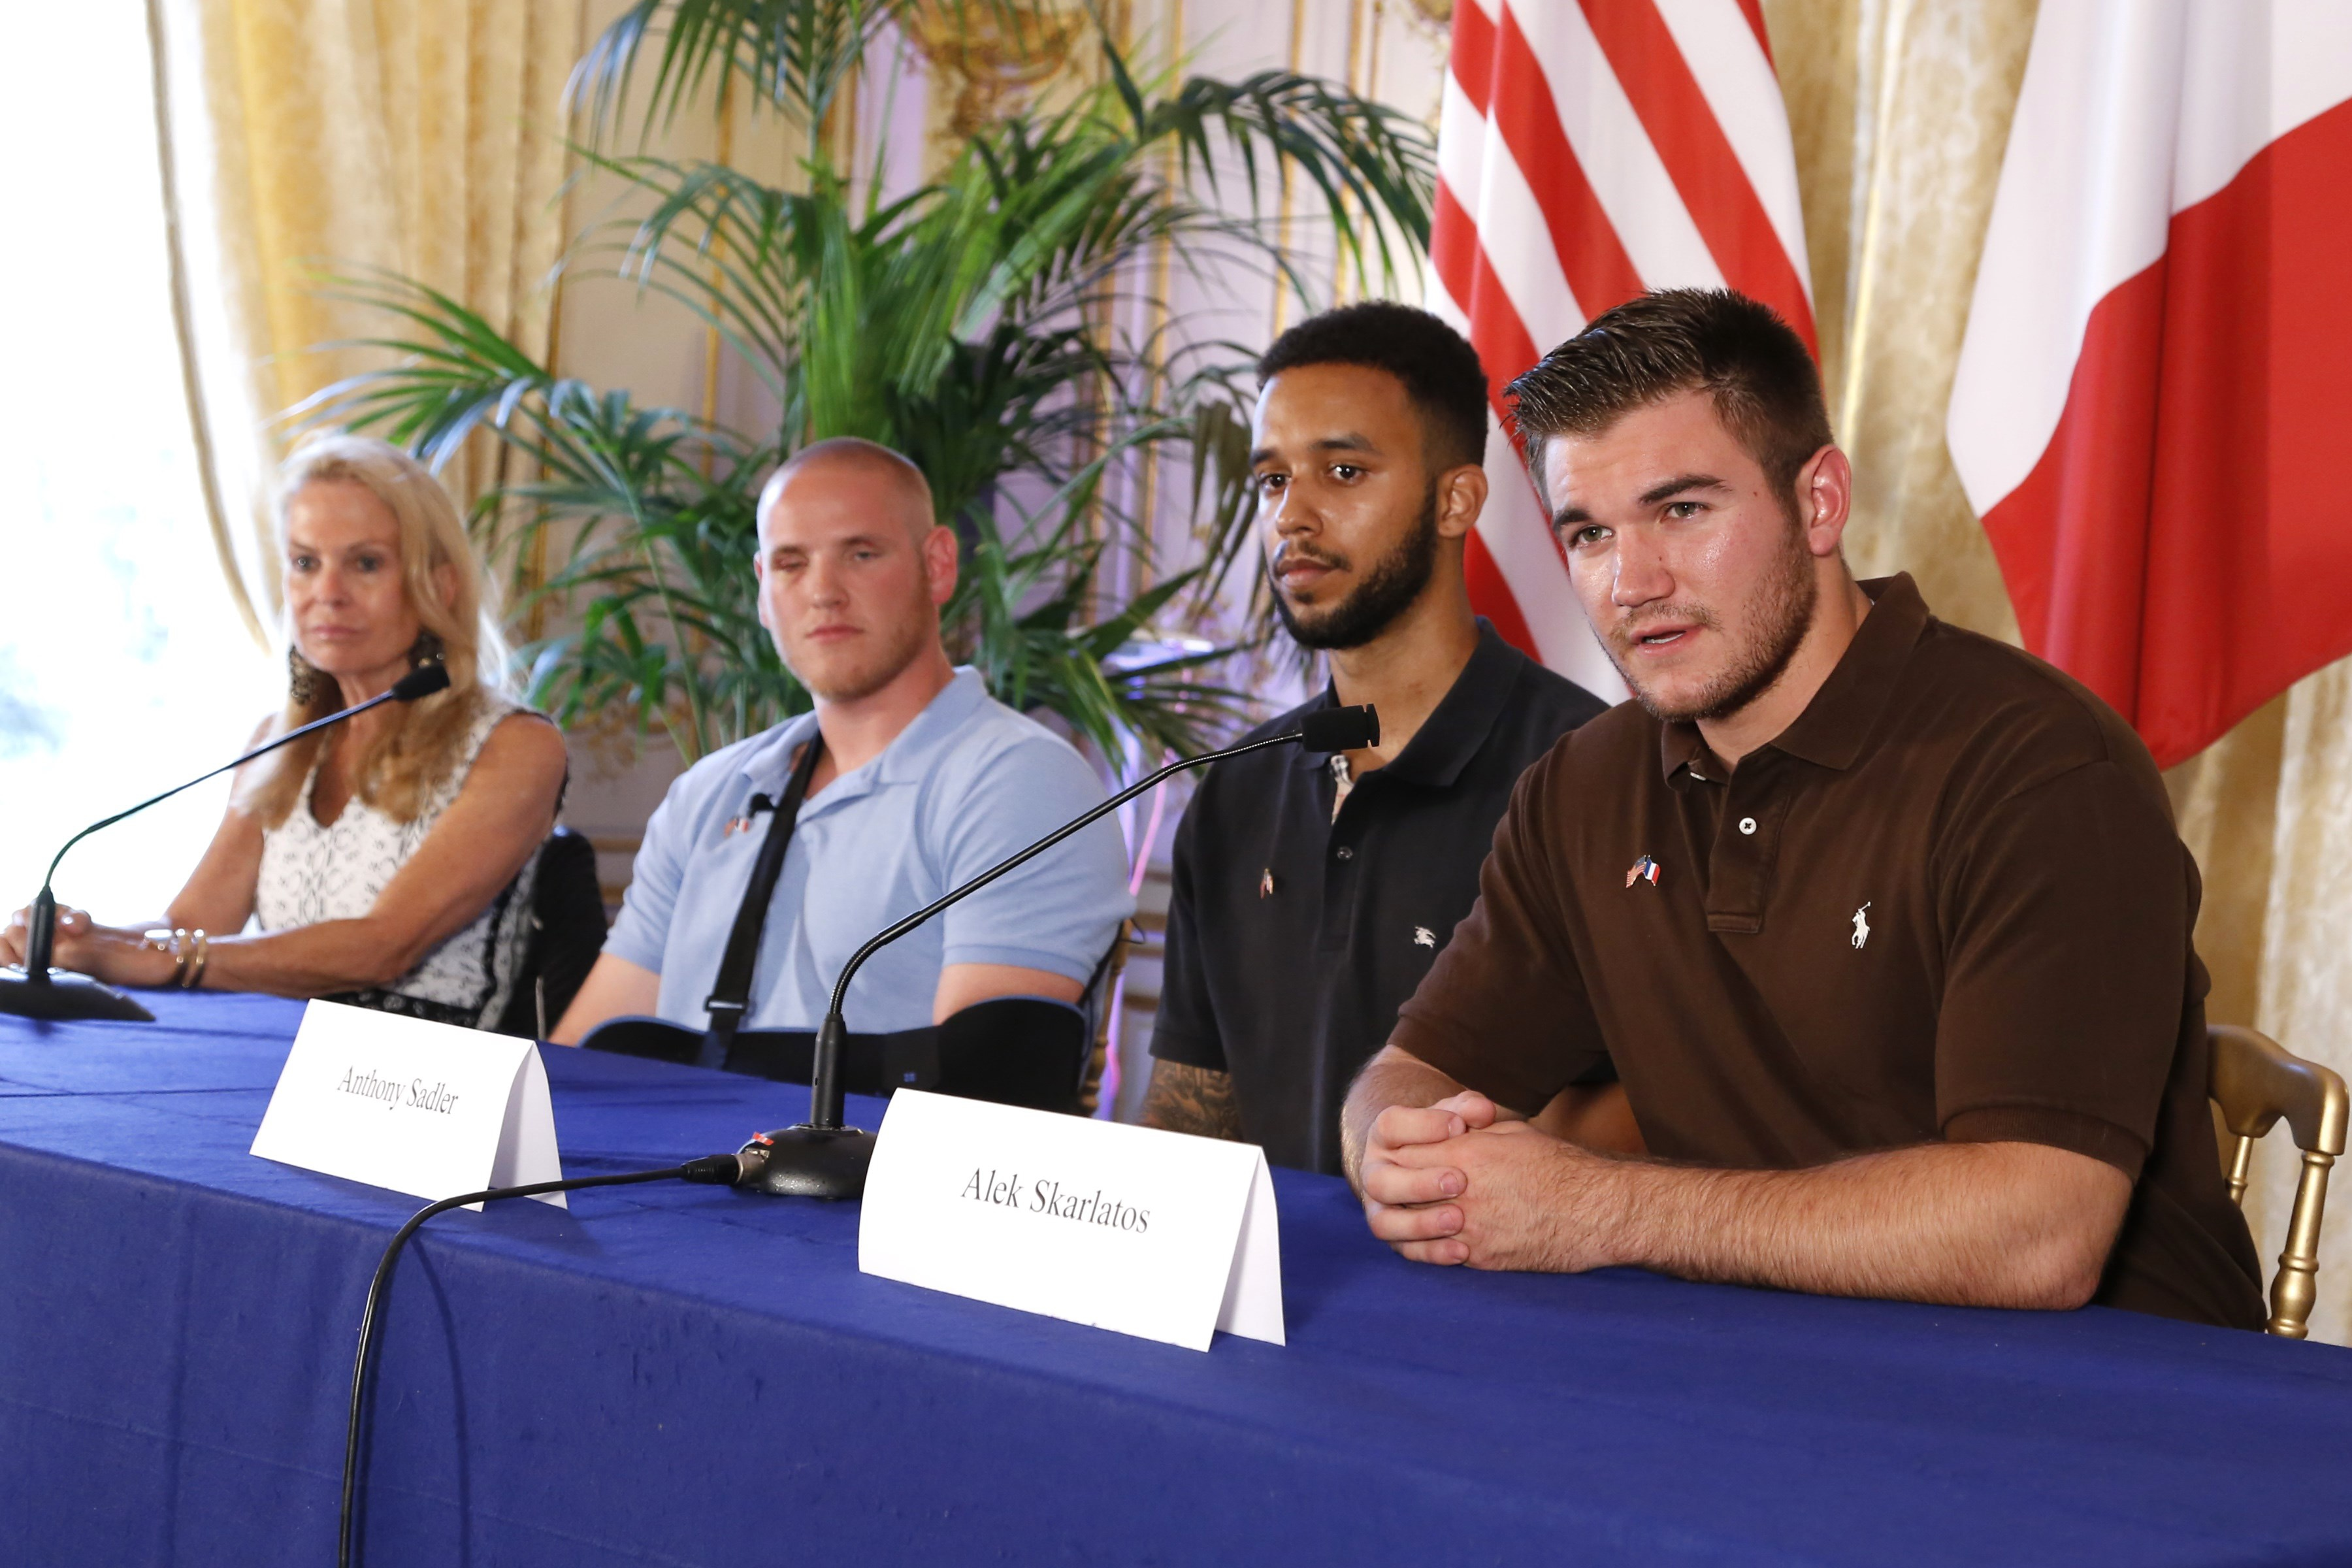 US ambassador to France Jane Hartley, off-duty US servicemen Spencer Stone, Anthony Sadler and Alek Skarlatos attend a press conference at the US embassy in Paris on August 23, 2015, two days after 25-year-old Moroccan Ayoub El-Khazzani opened fire on a Thalys train travelling from Amsterdam to Paris, injuring two people before being tackled by several passengers including off-duty American servicemen. (THOMAS SAMSON/AFP/Getty Images)